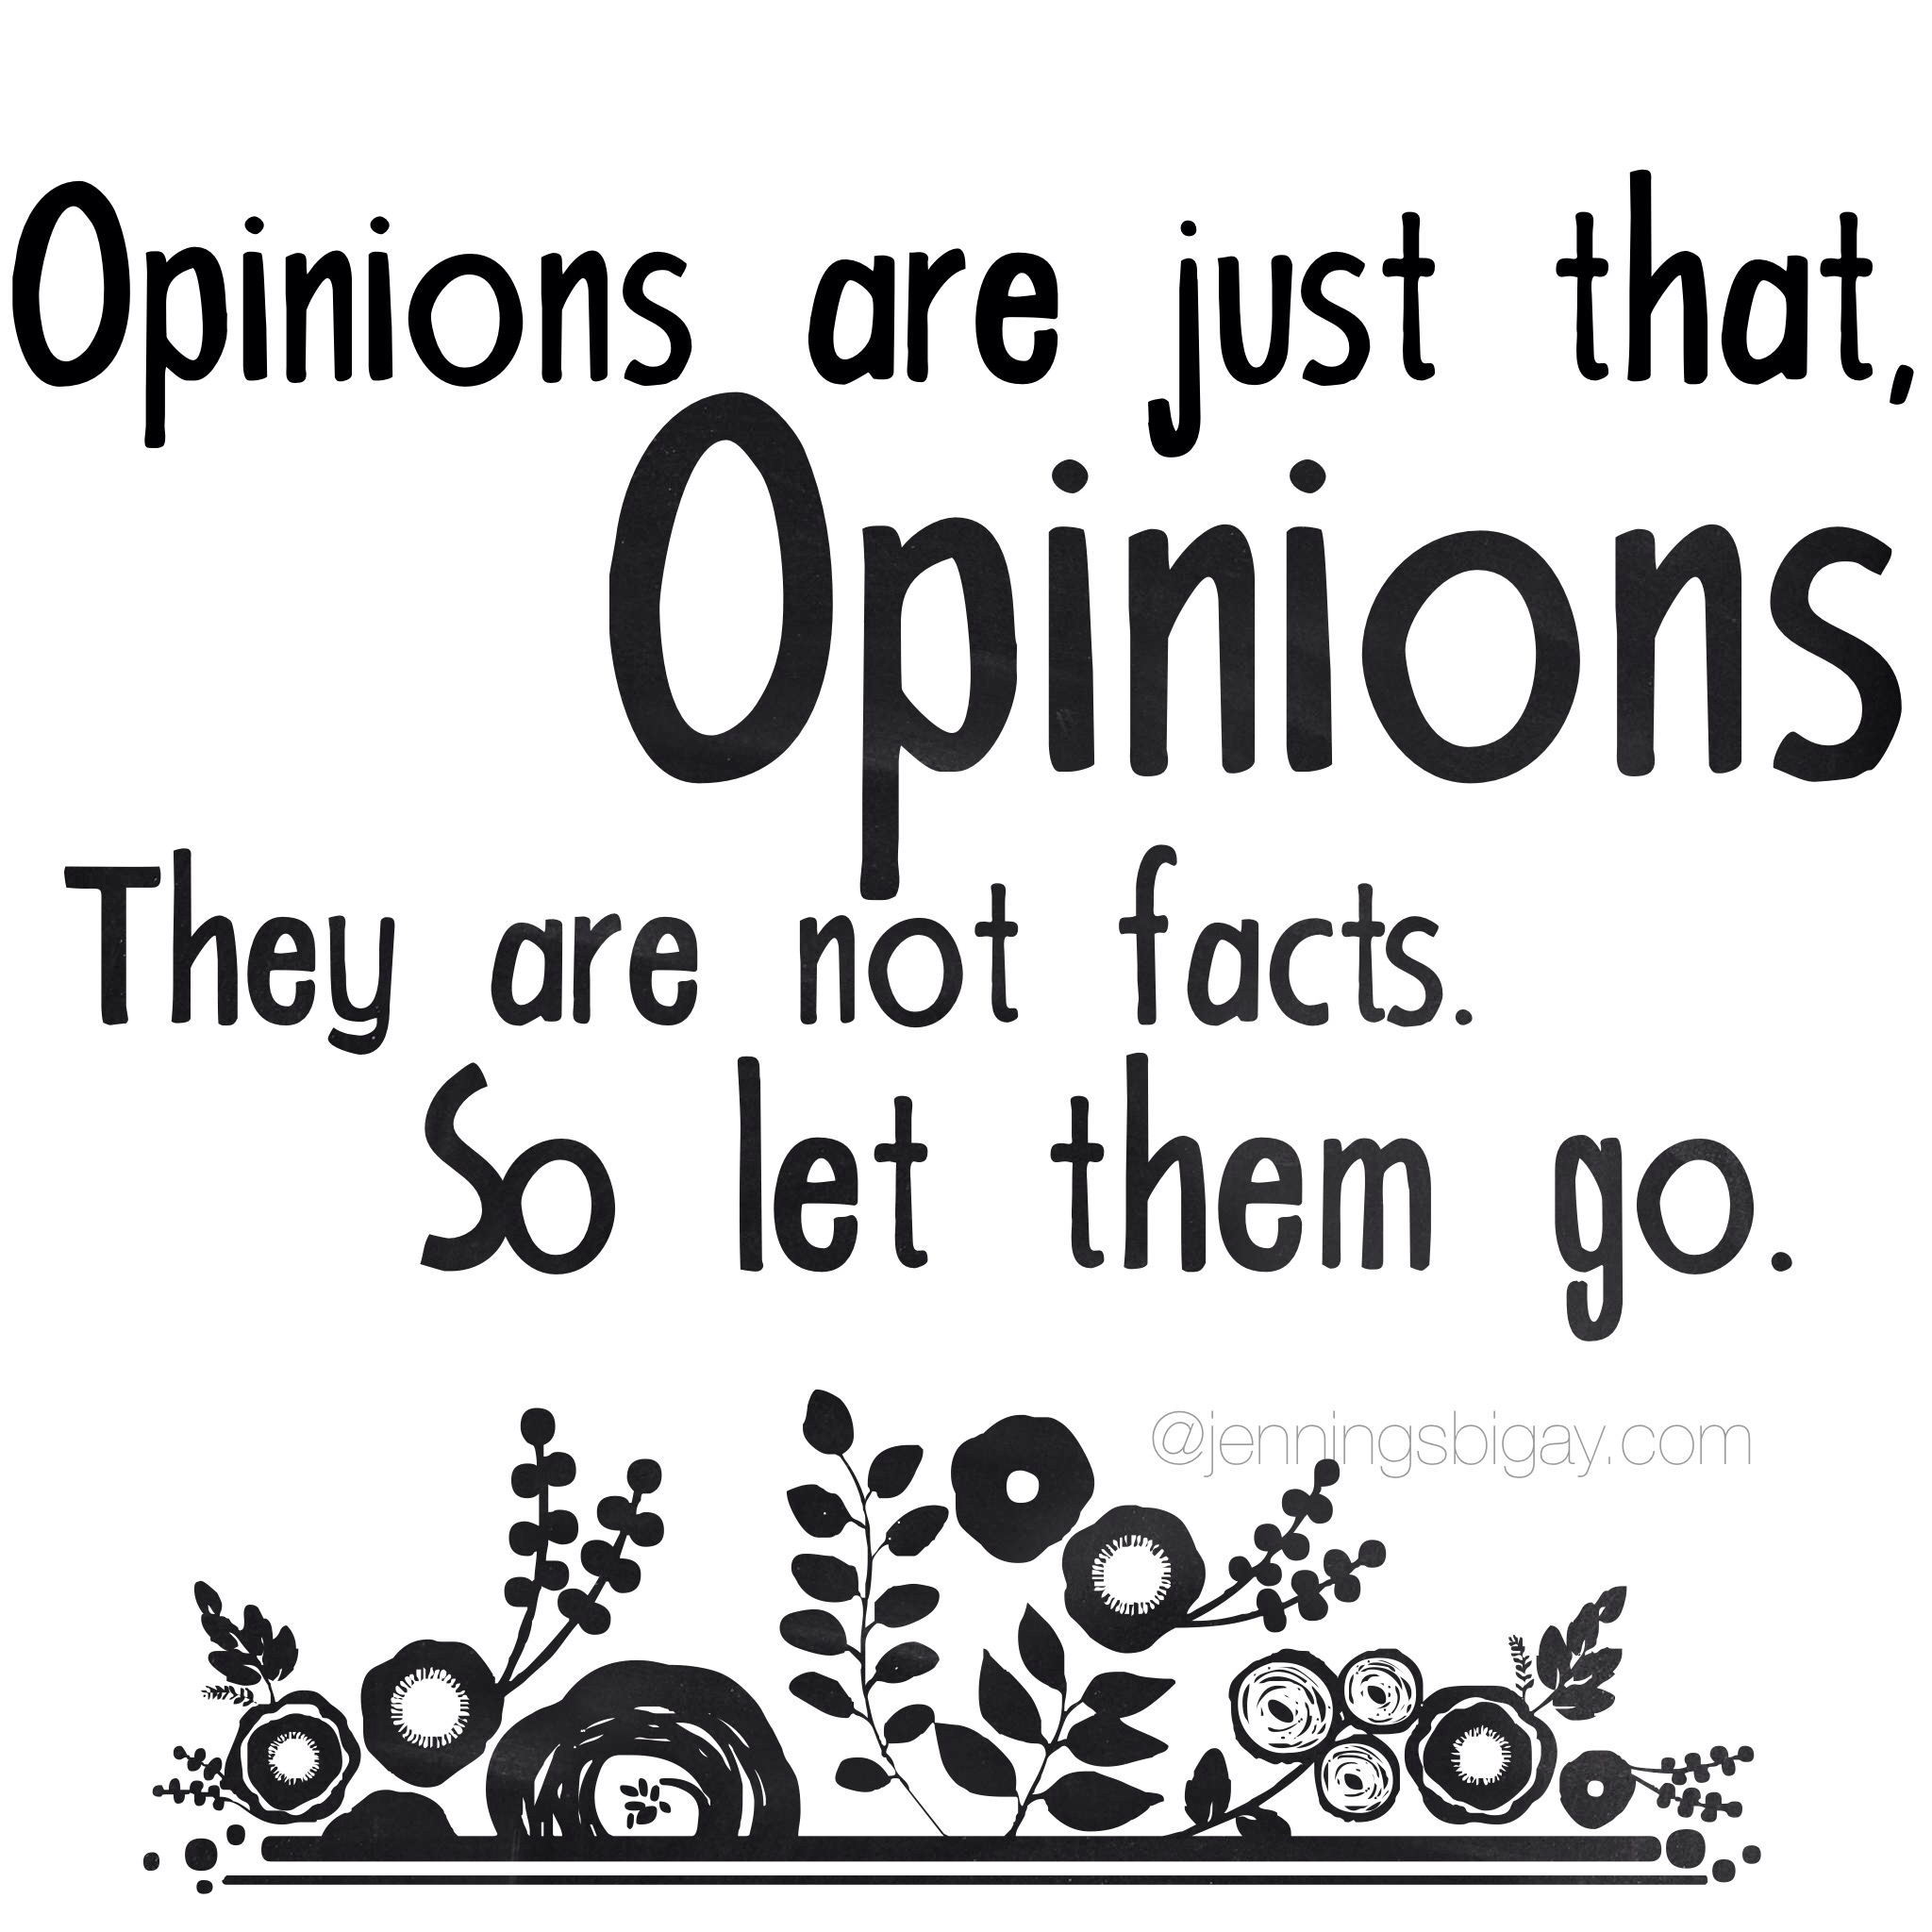 62 Top Opinion Quotes & Sayings